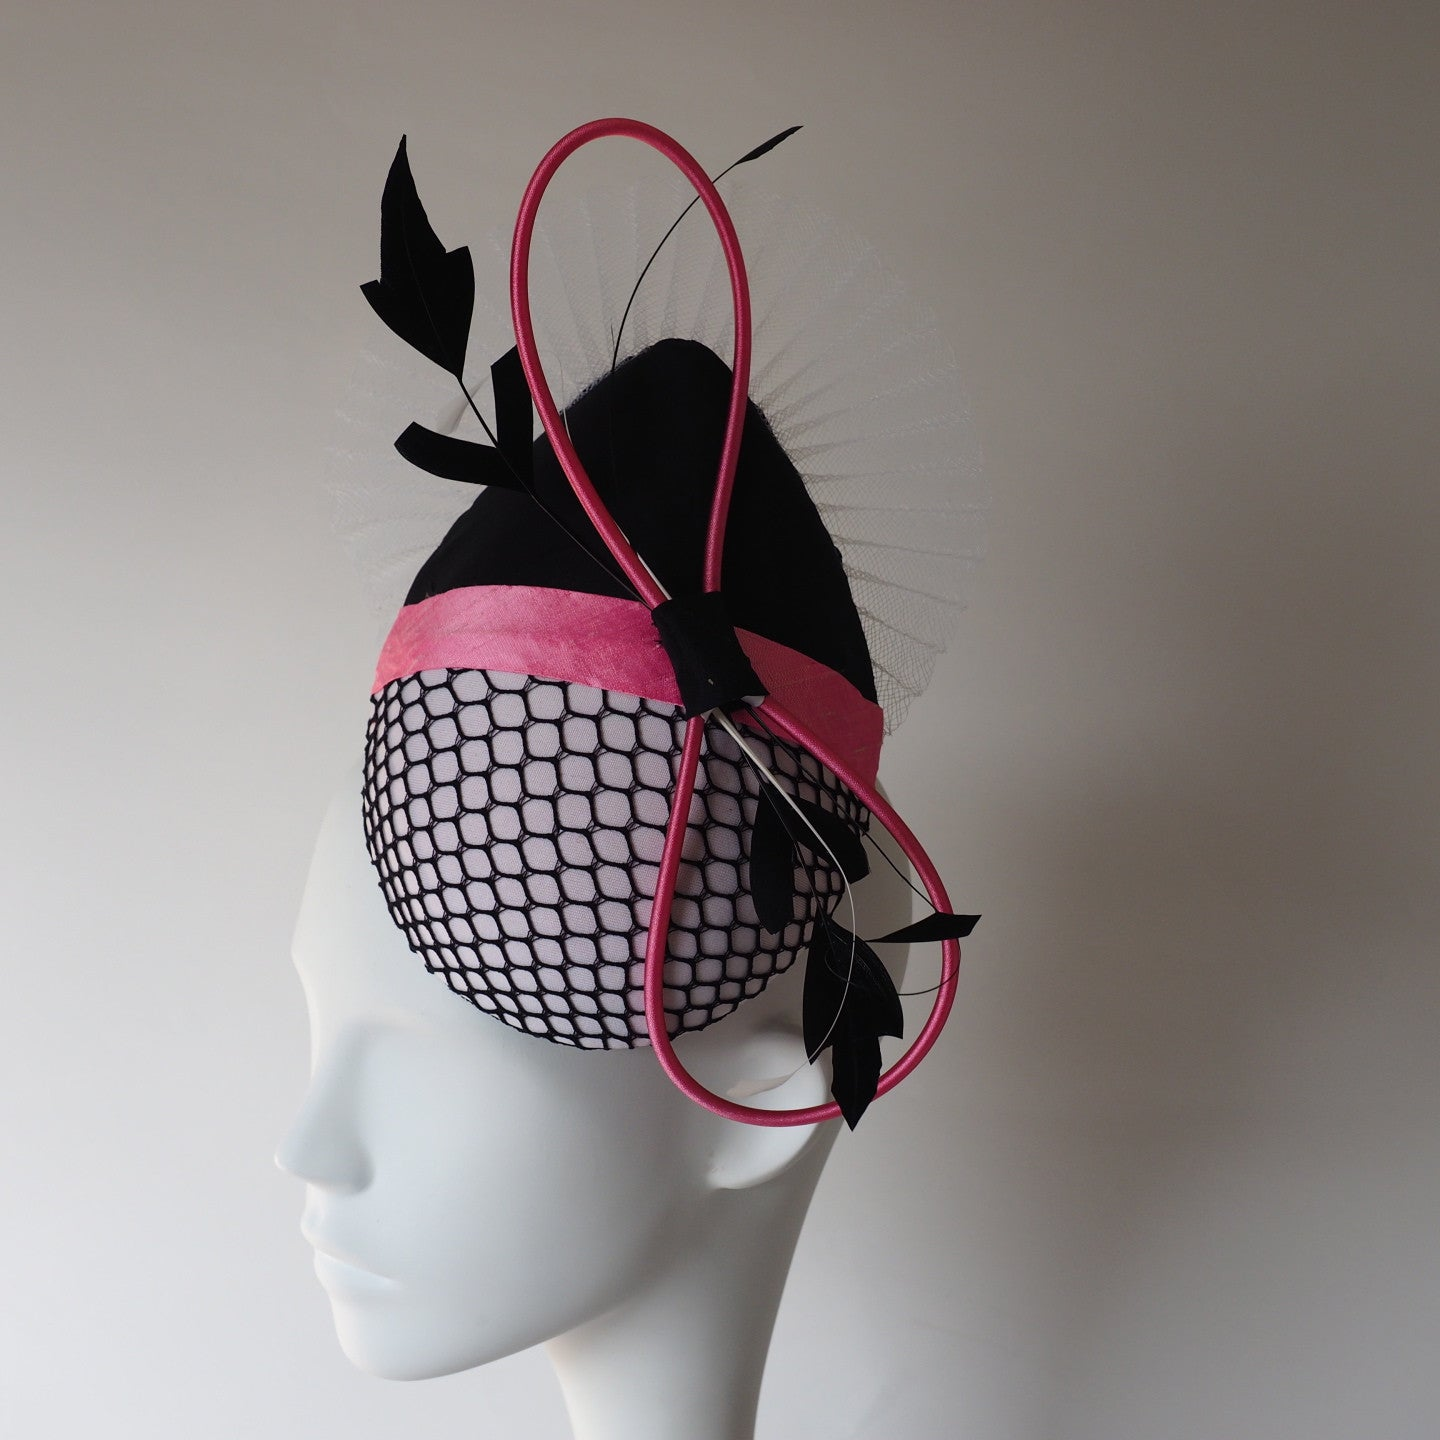 Parisienne Girl - Chic Elegant Percher style Hat for races - Made to Order in other Colours - NOELEEN MILLINERY HONG KONG